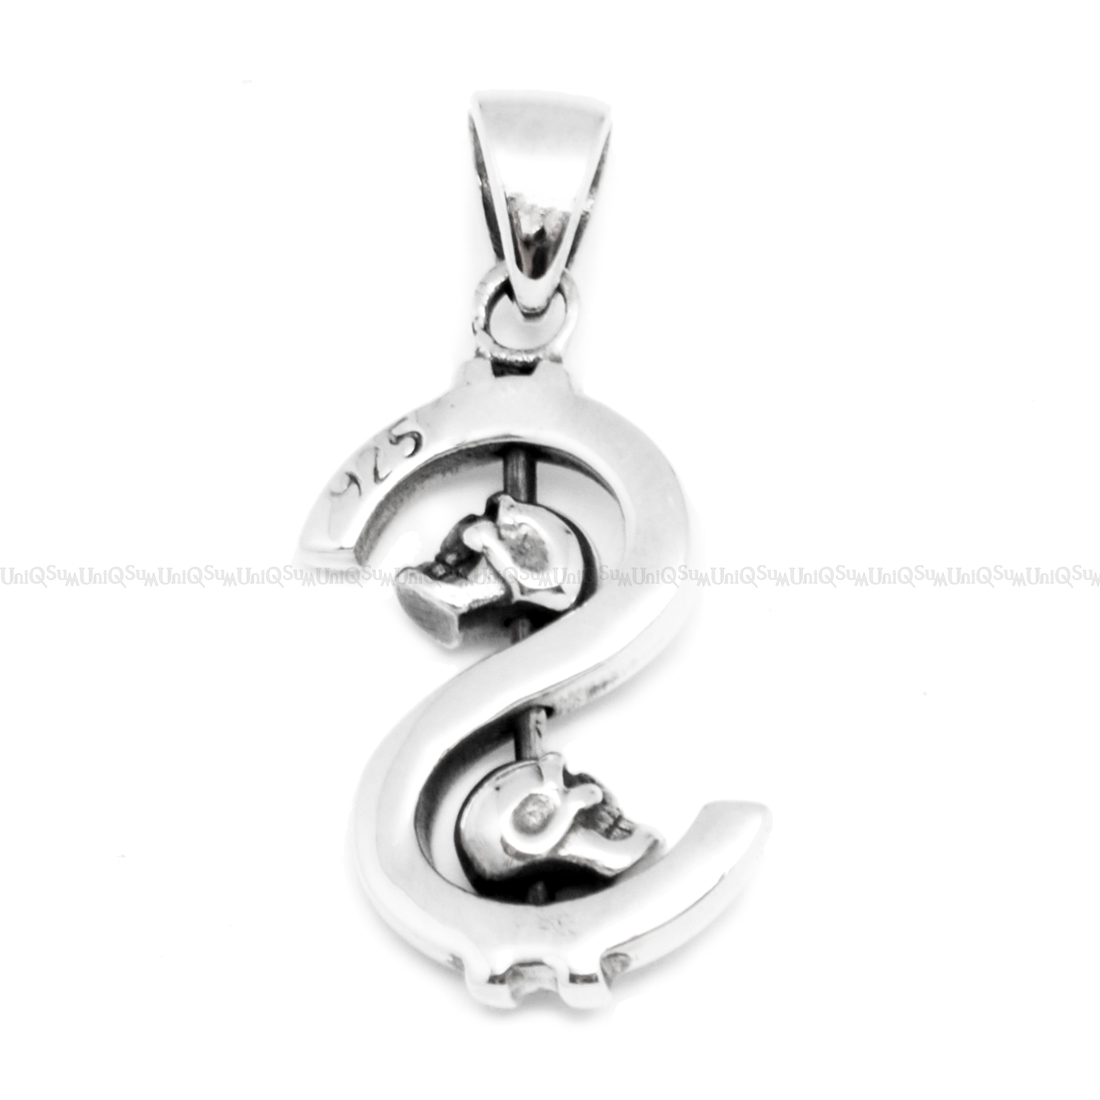 Dollar sign skull 925 sterling silver pendant uniqsum skull pendant dollar skull sterling silver pendants for mens necklaces mozeypictures Choice Image